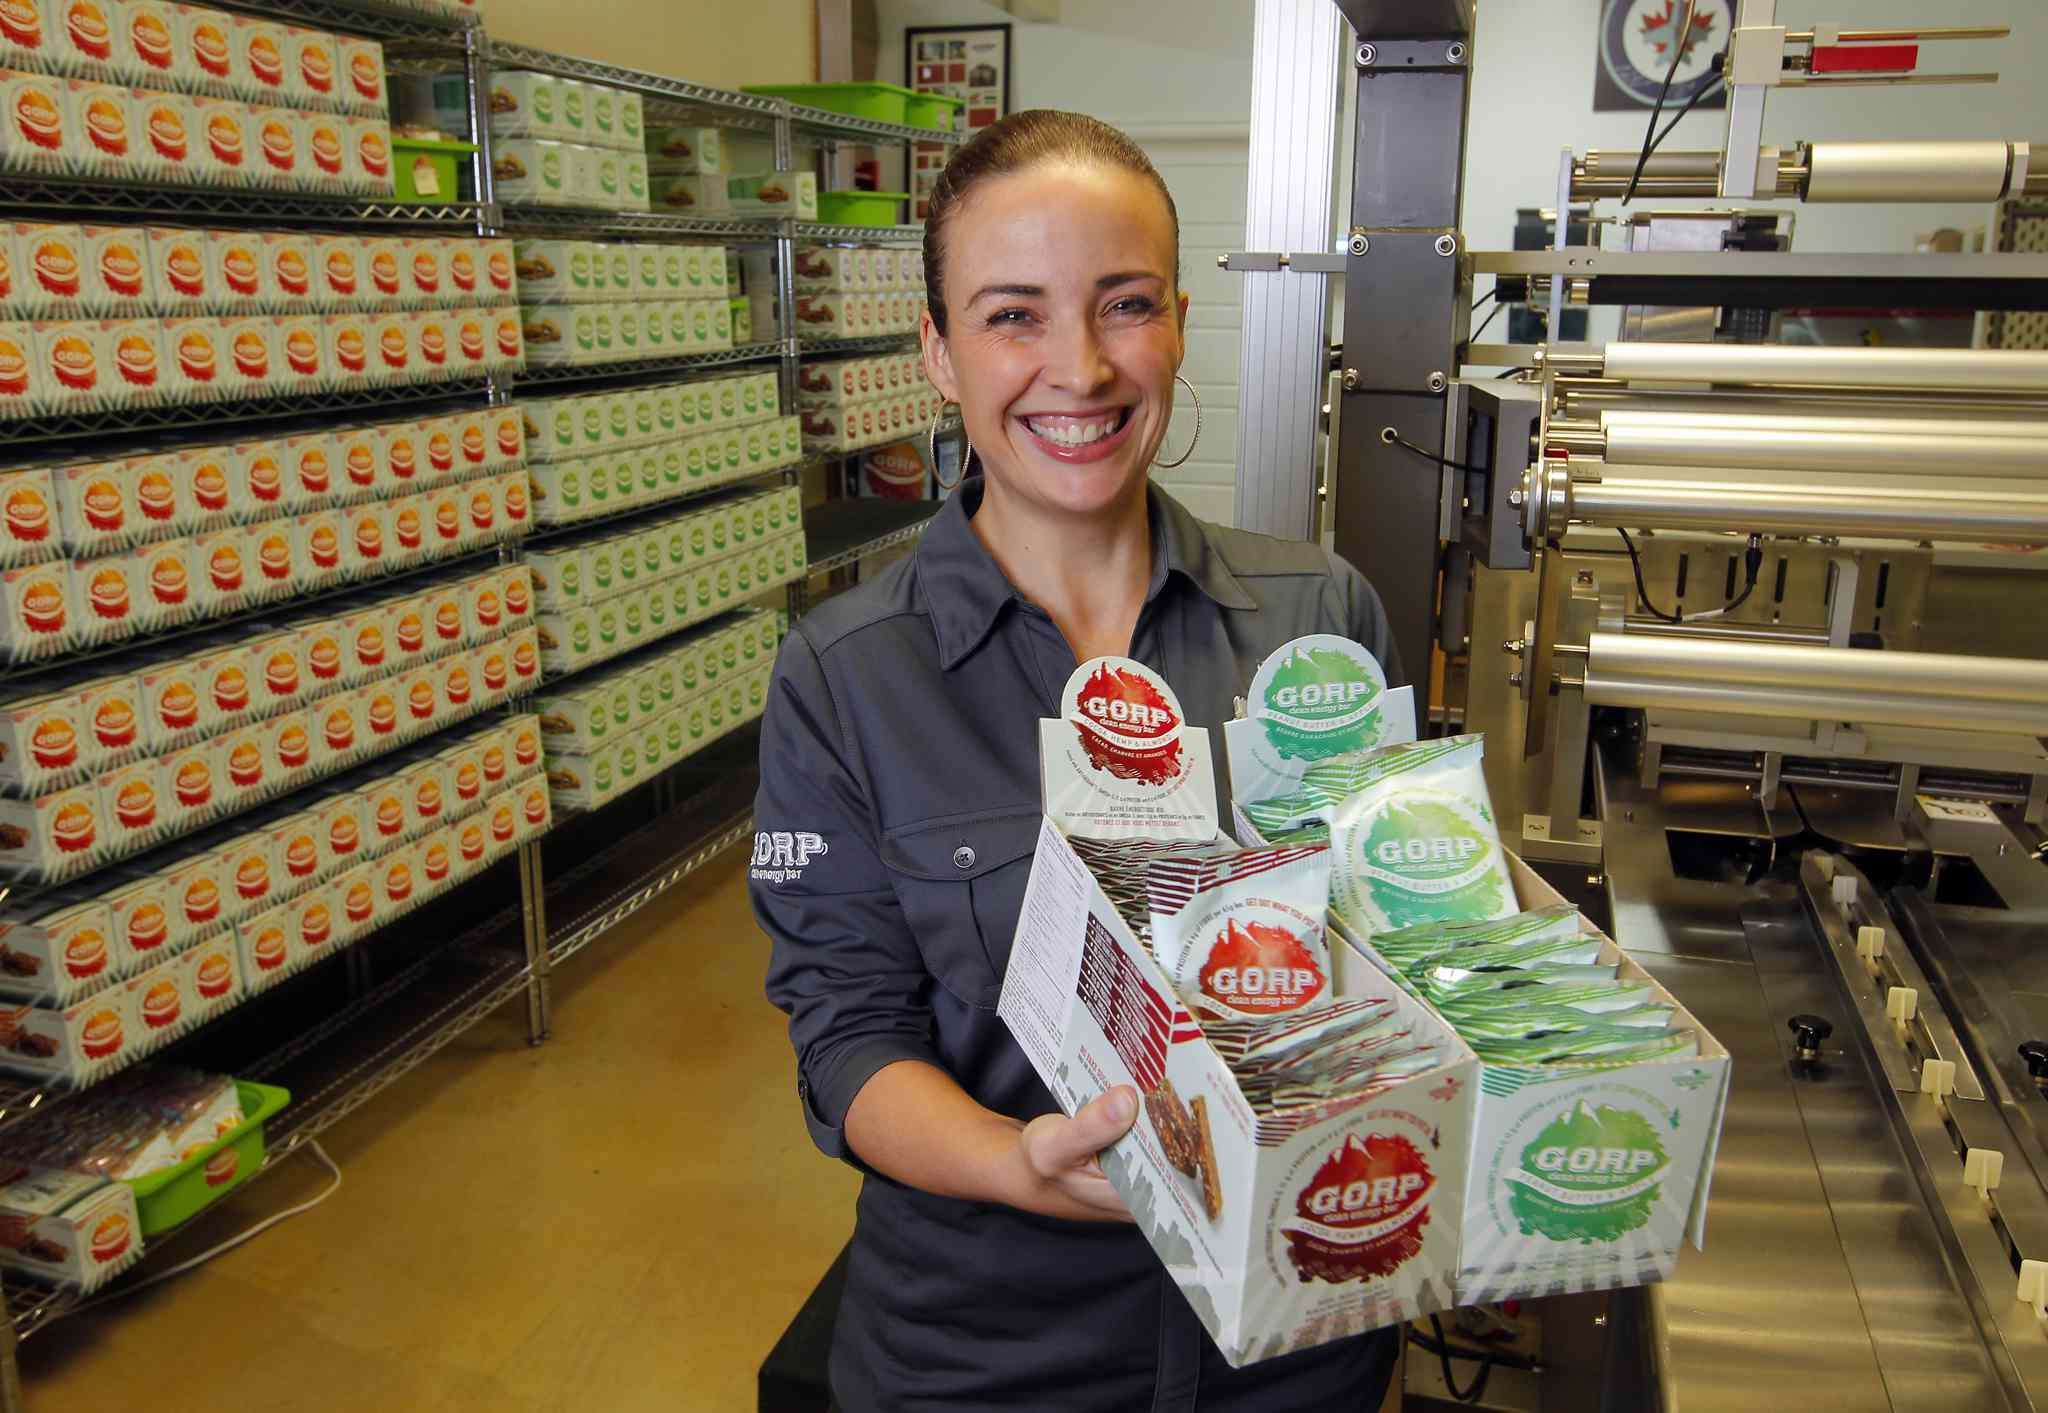 Colleen Dyck is the owner of GORP Clean Energy Bar.